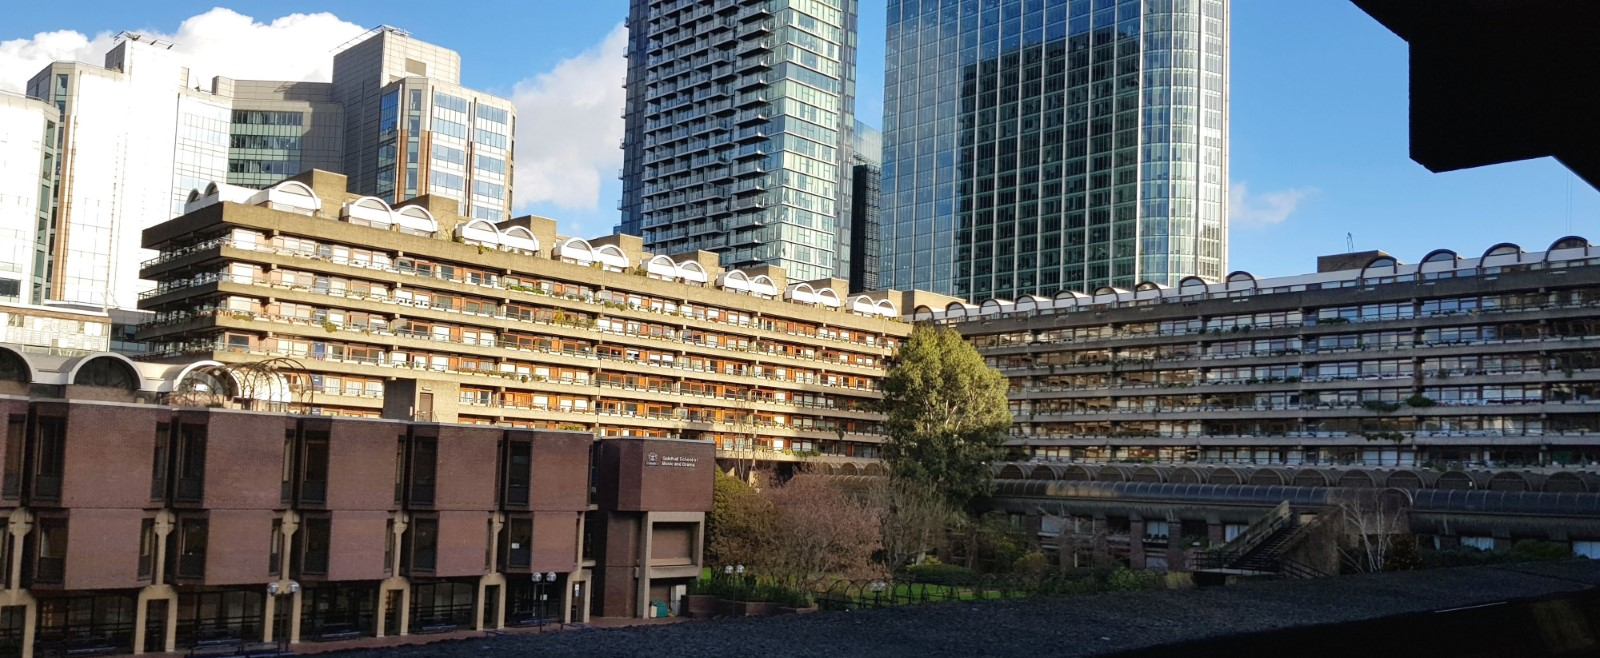 ifat-angel-Barbican-london-view